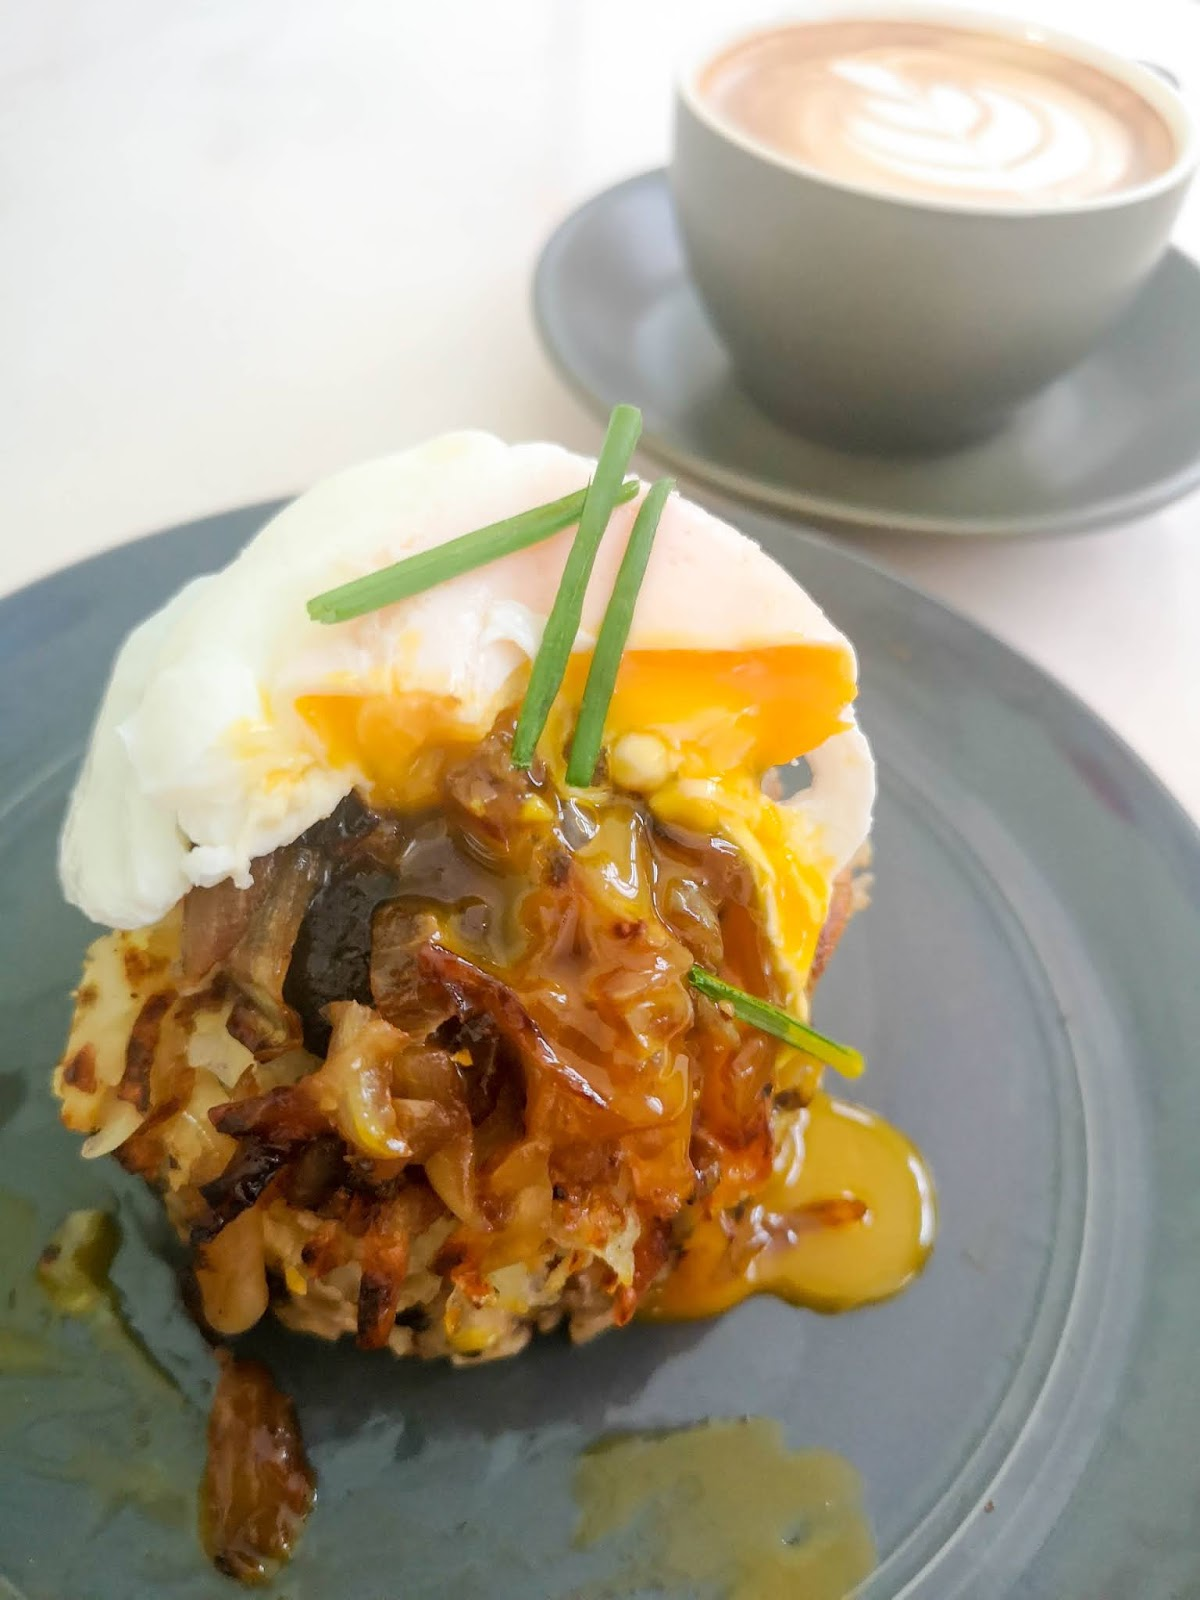 stay-home cooking #11: potato hash with mushroom duxelles by emily, creofe baked goods